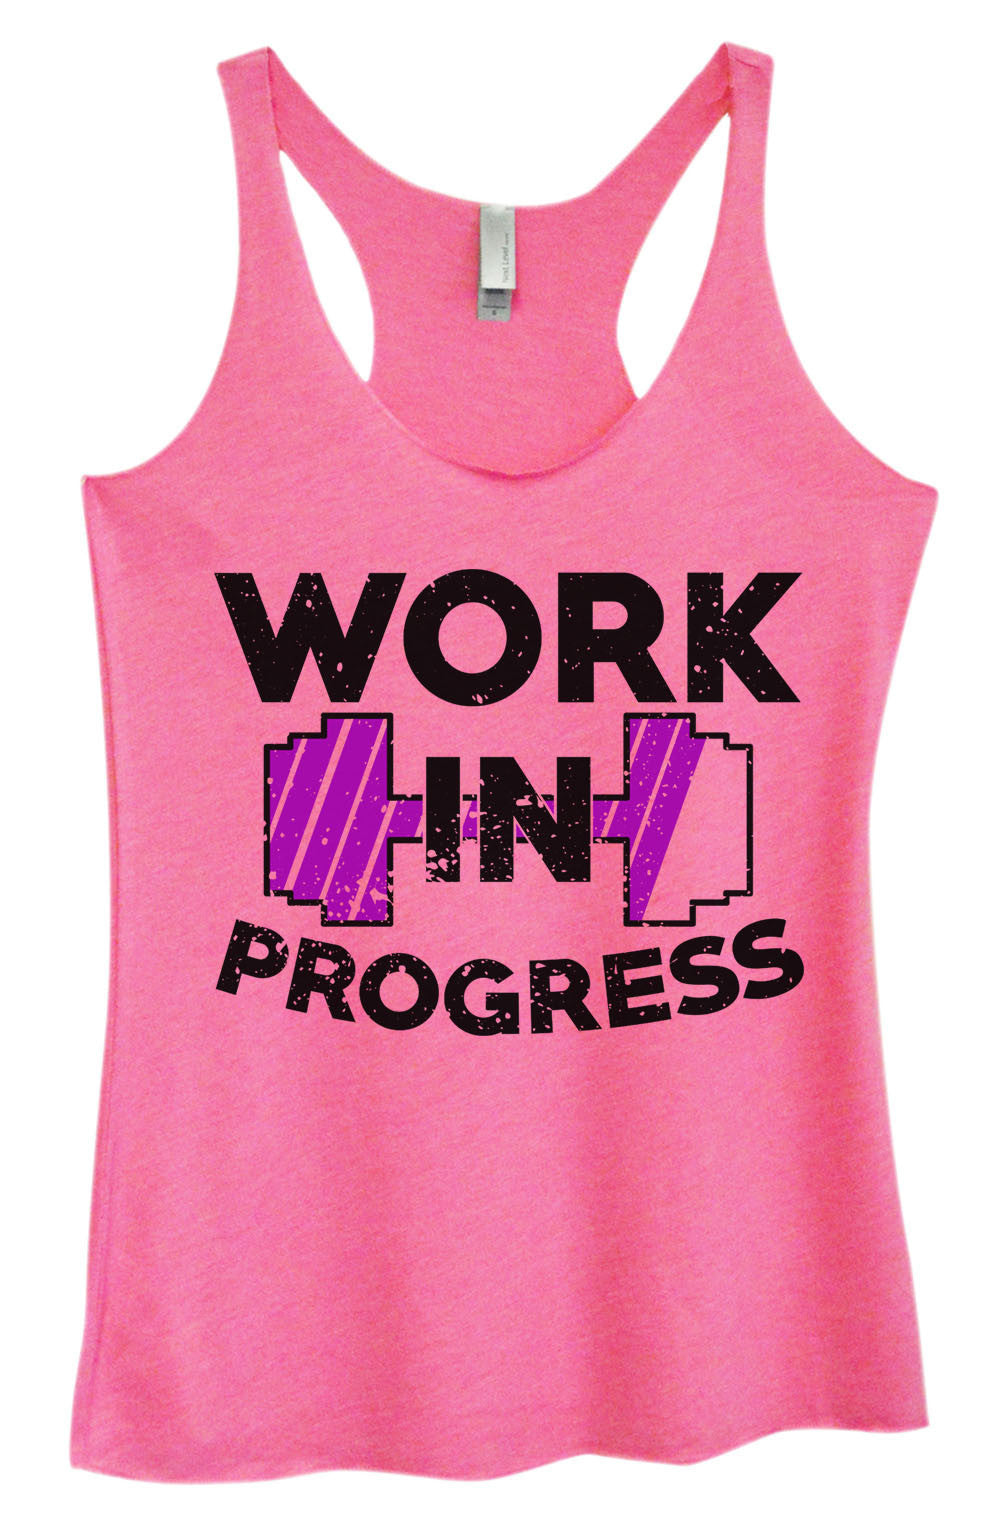 Womens Fashion Triblend Tank Top - Work In Progress - Tri-962 - Funny Shirts Tank Tops Burnouts and Triblends  - 3